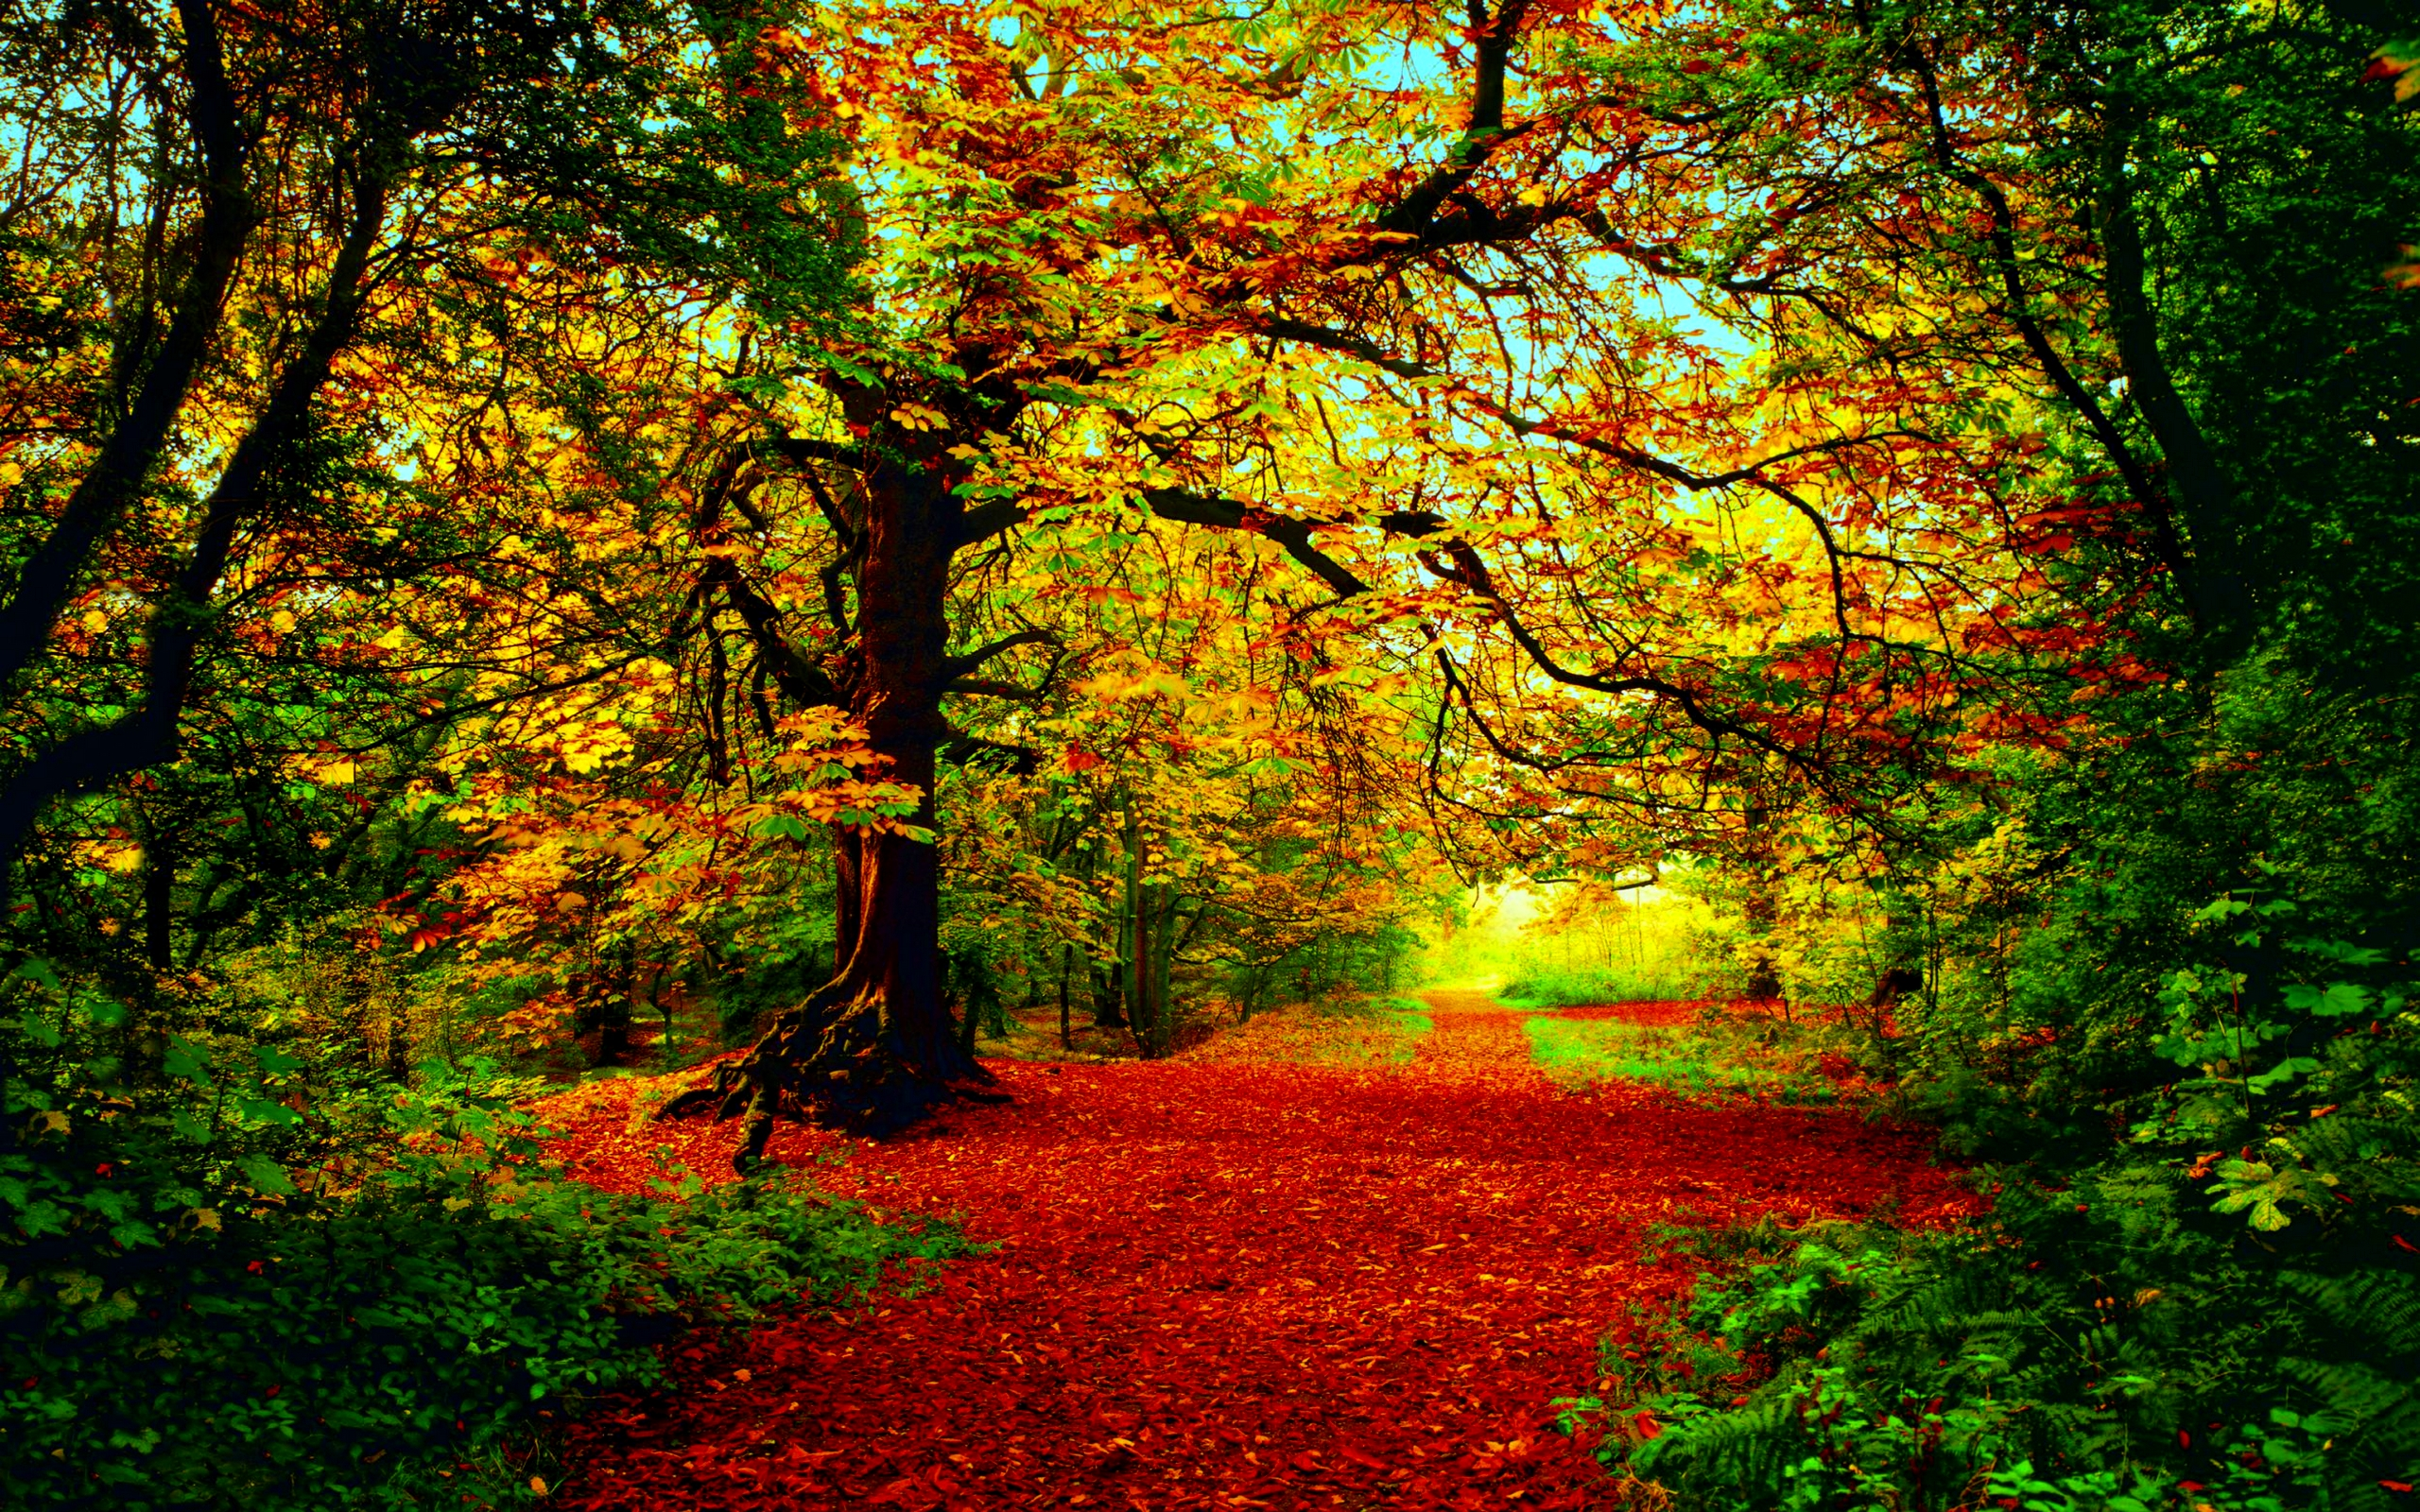 Herfst Full Hd Wallpaper And Achtergrond 2560x1600 Id Most Beautiful Background Color Image